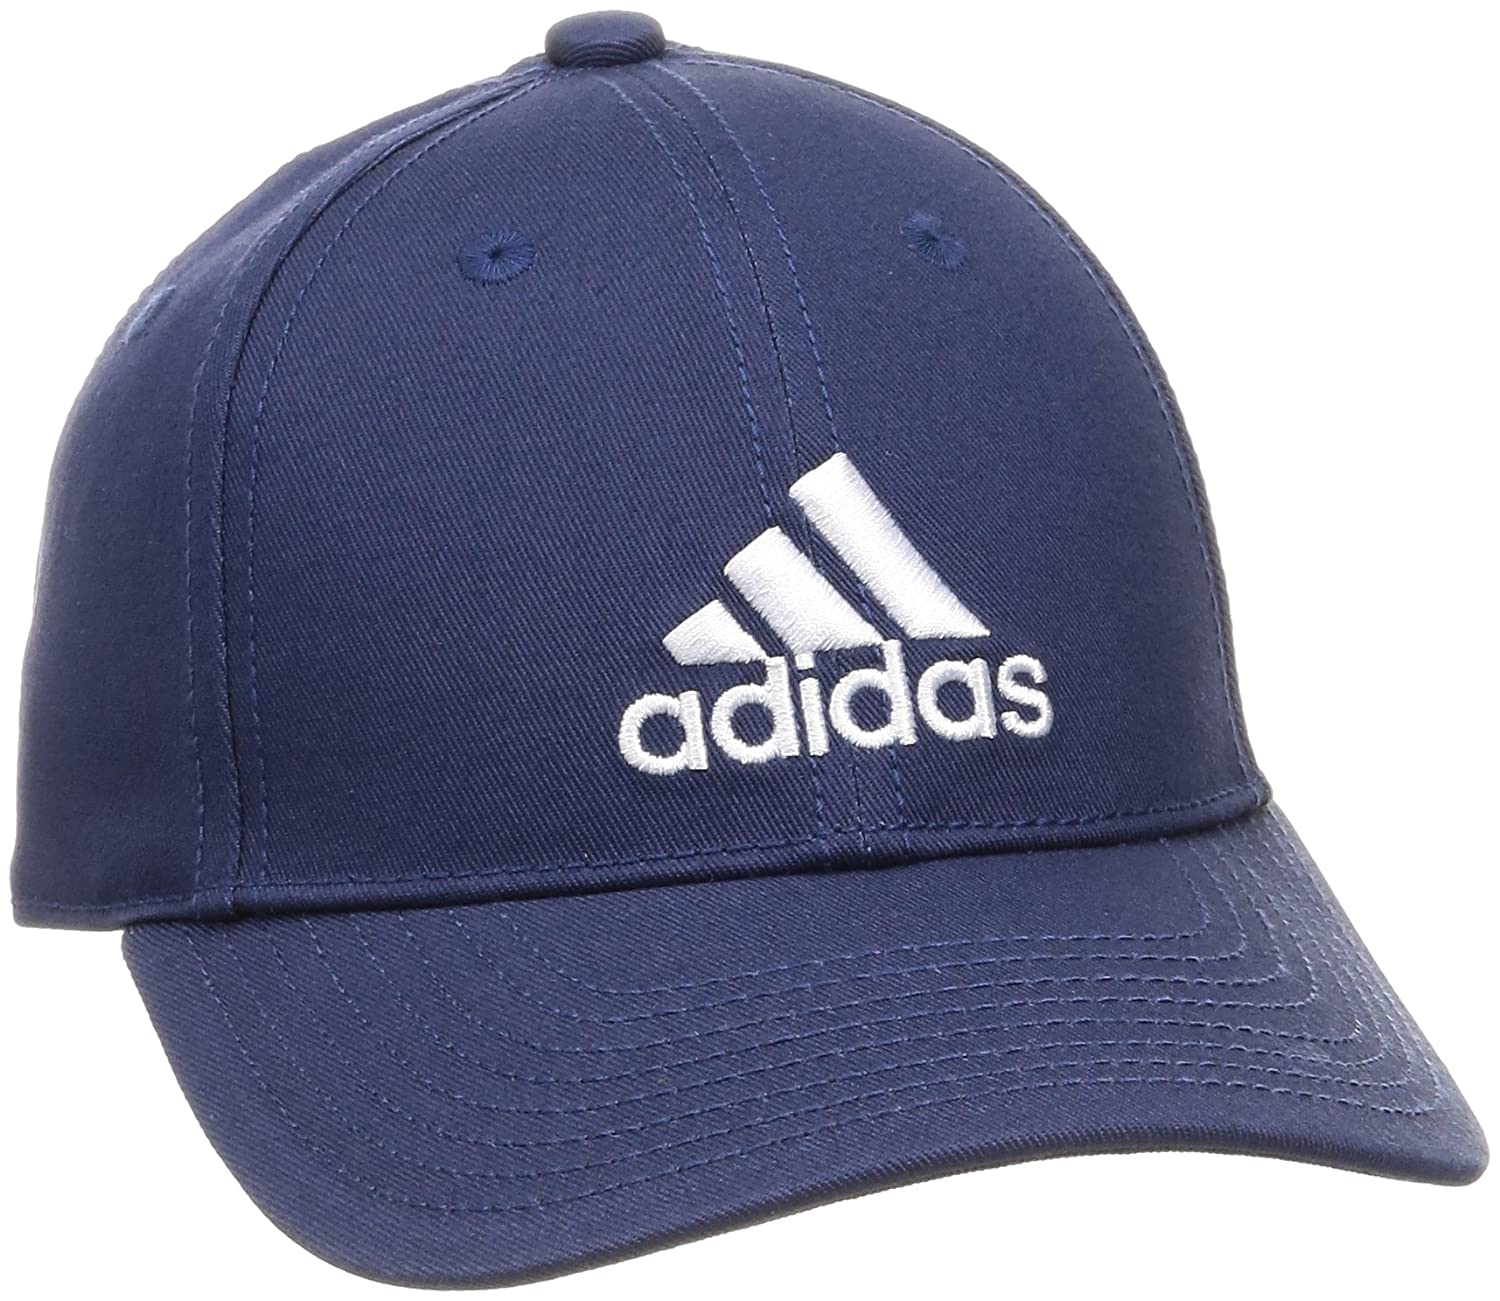 Adidas CF6913 6P Cotton Cap - Renoble Indigo/Noble Indigo/White/Renoble Indigo, One Size